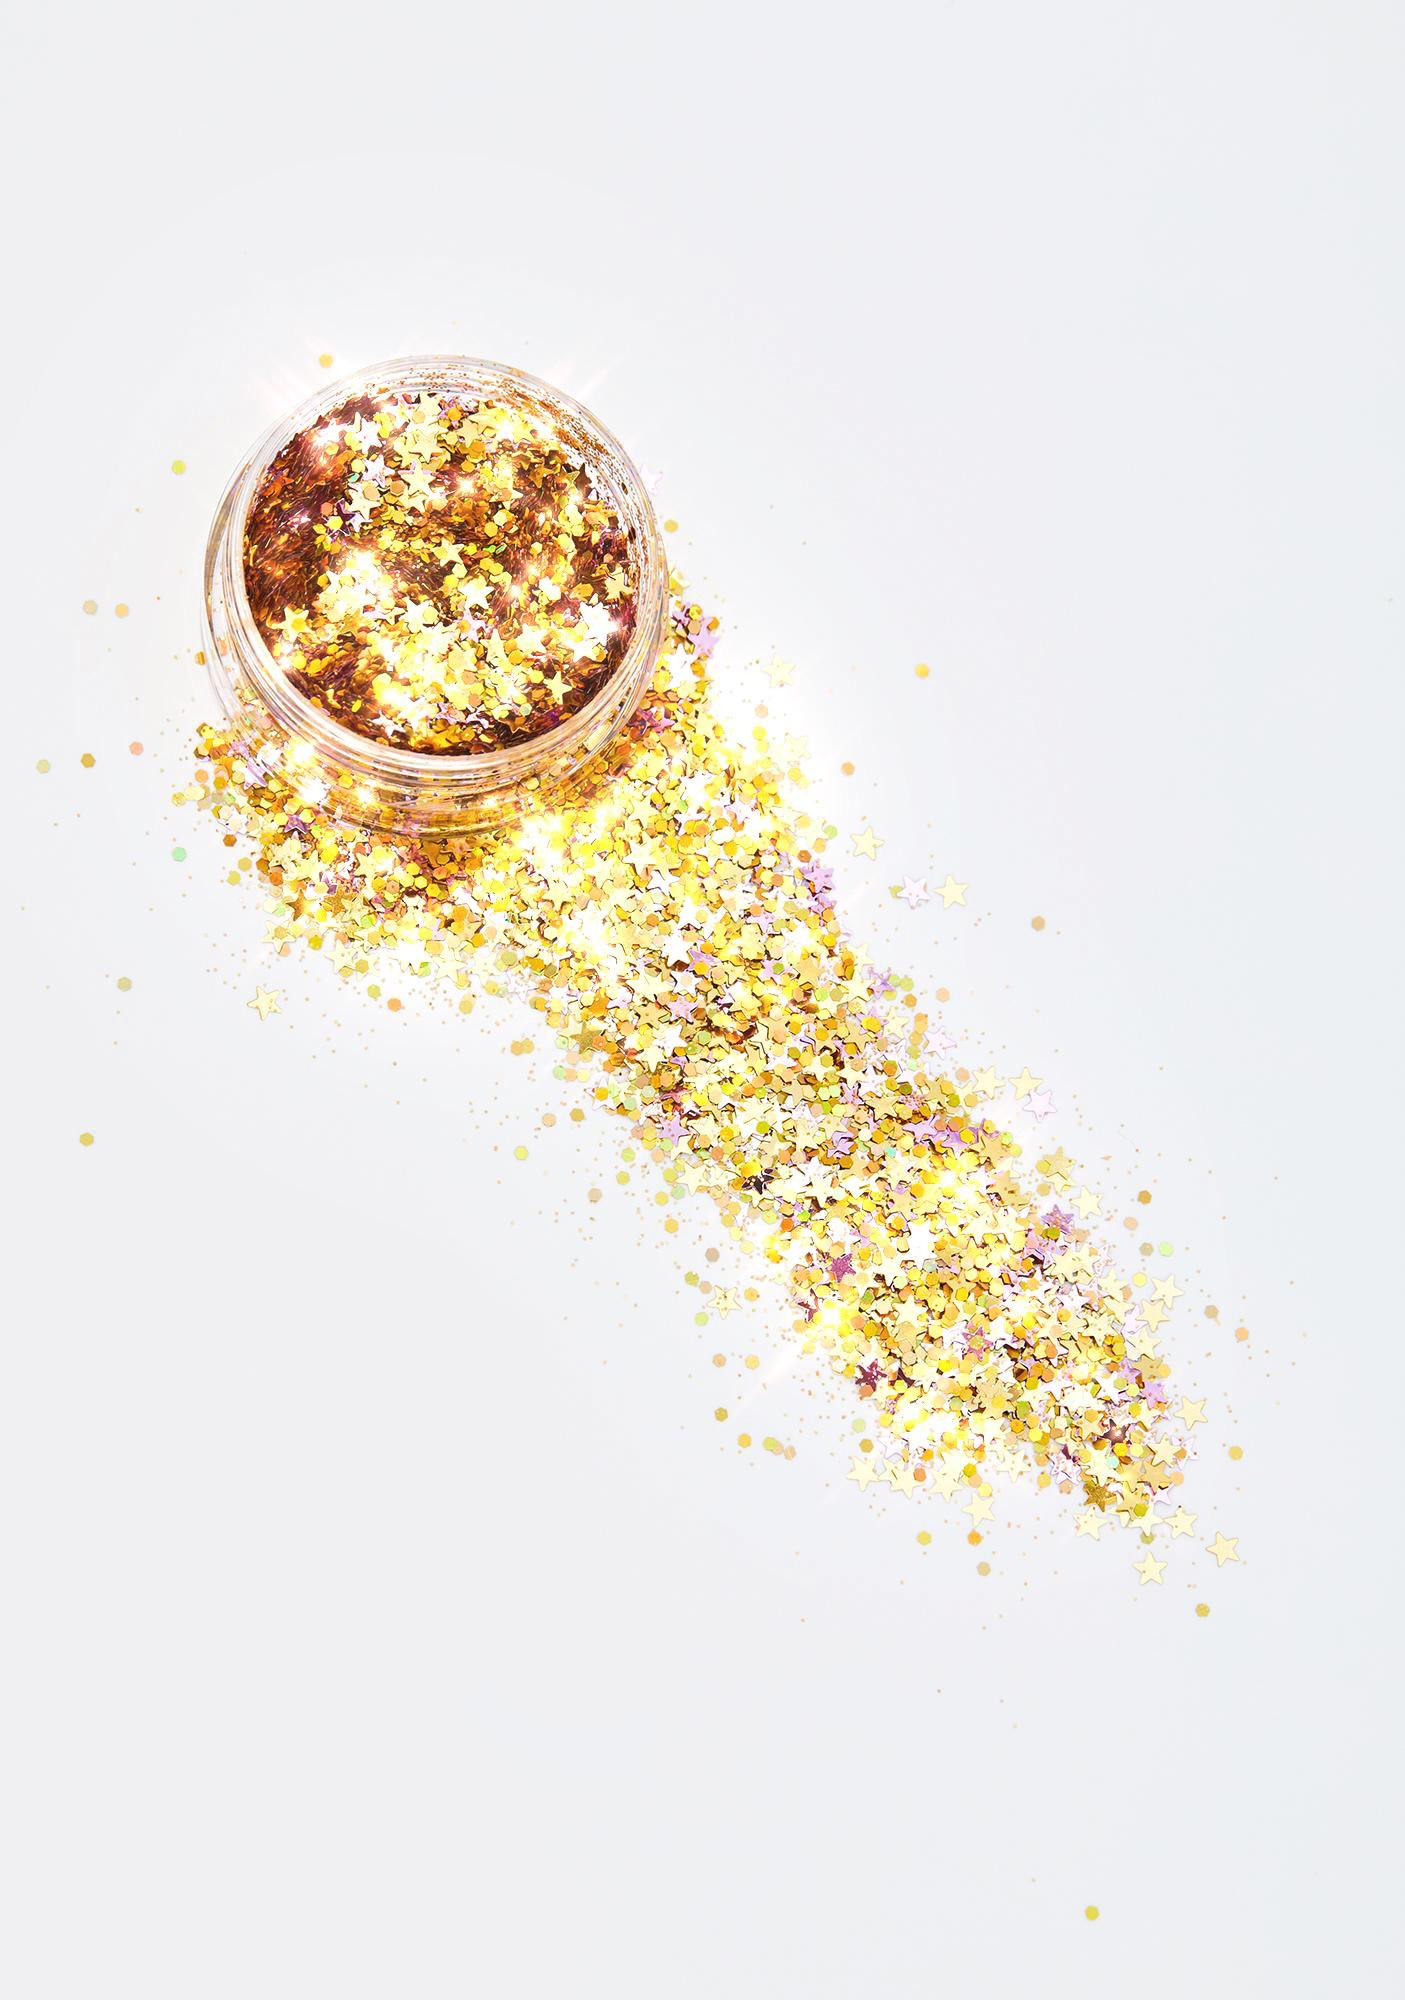 Trixie Cosmetics Immaterial Girl Sprinkles Loose Glitter